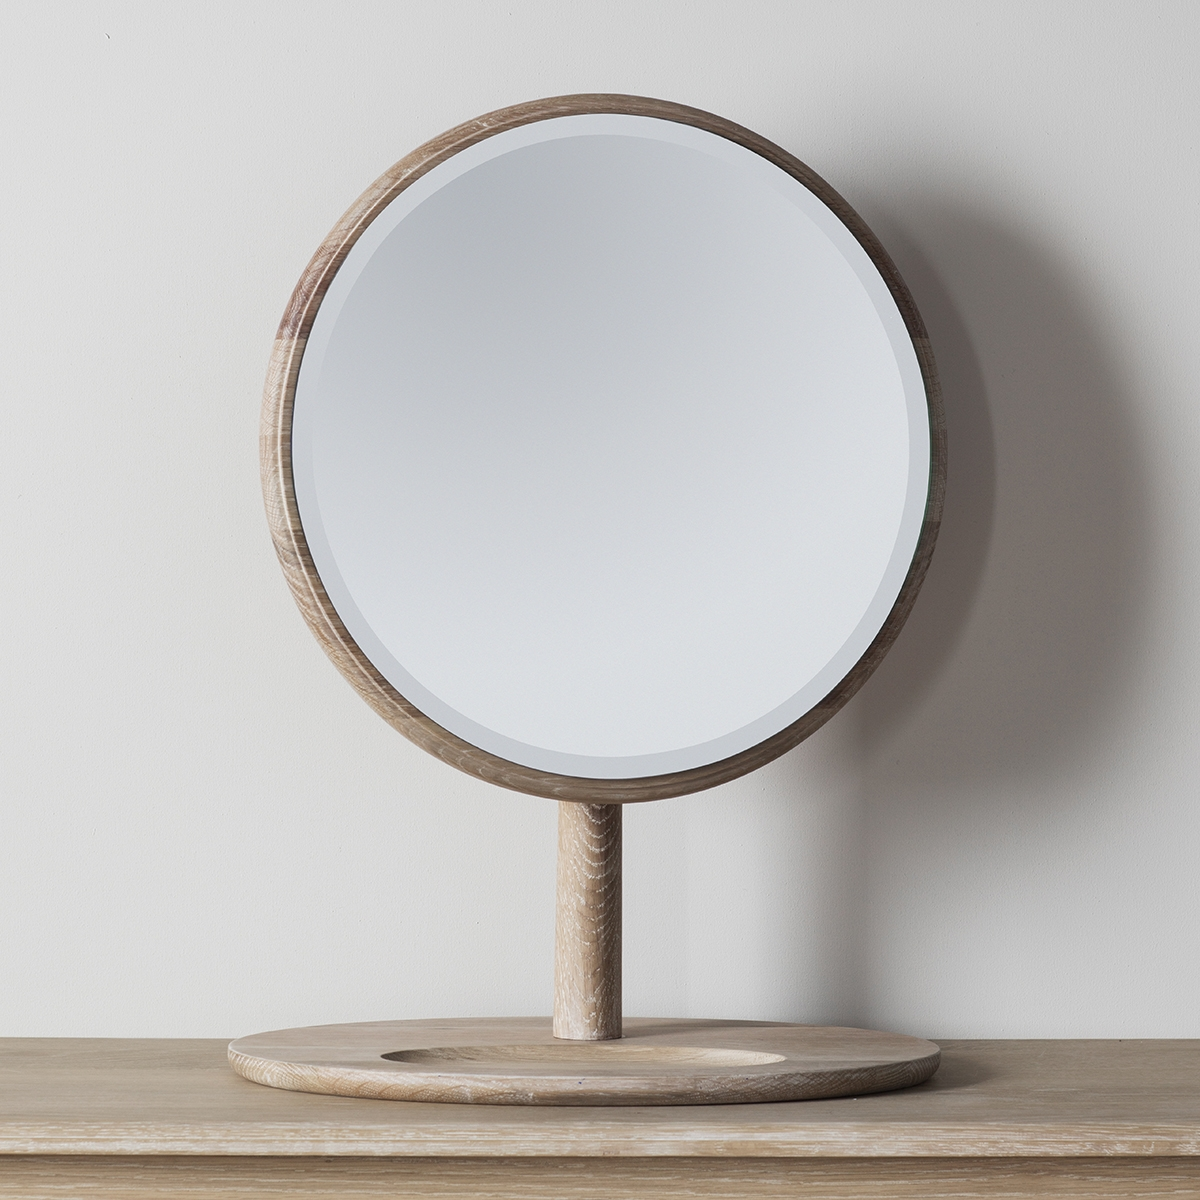 Wooden Framed Round Dressing Table Mirror 635 X 46cm Exclusive Intended For Dressing Mirror (Image 15 of 15)